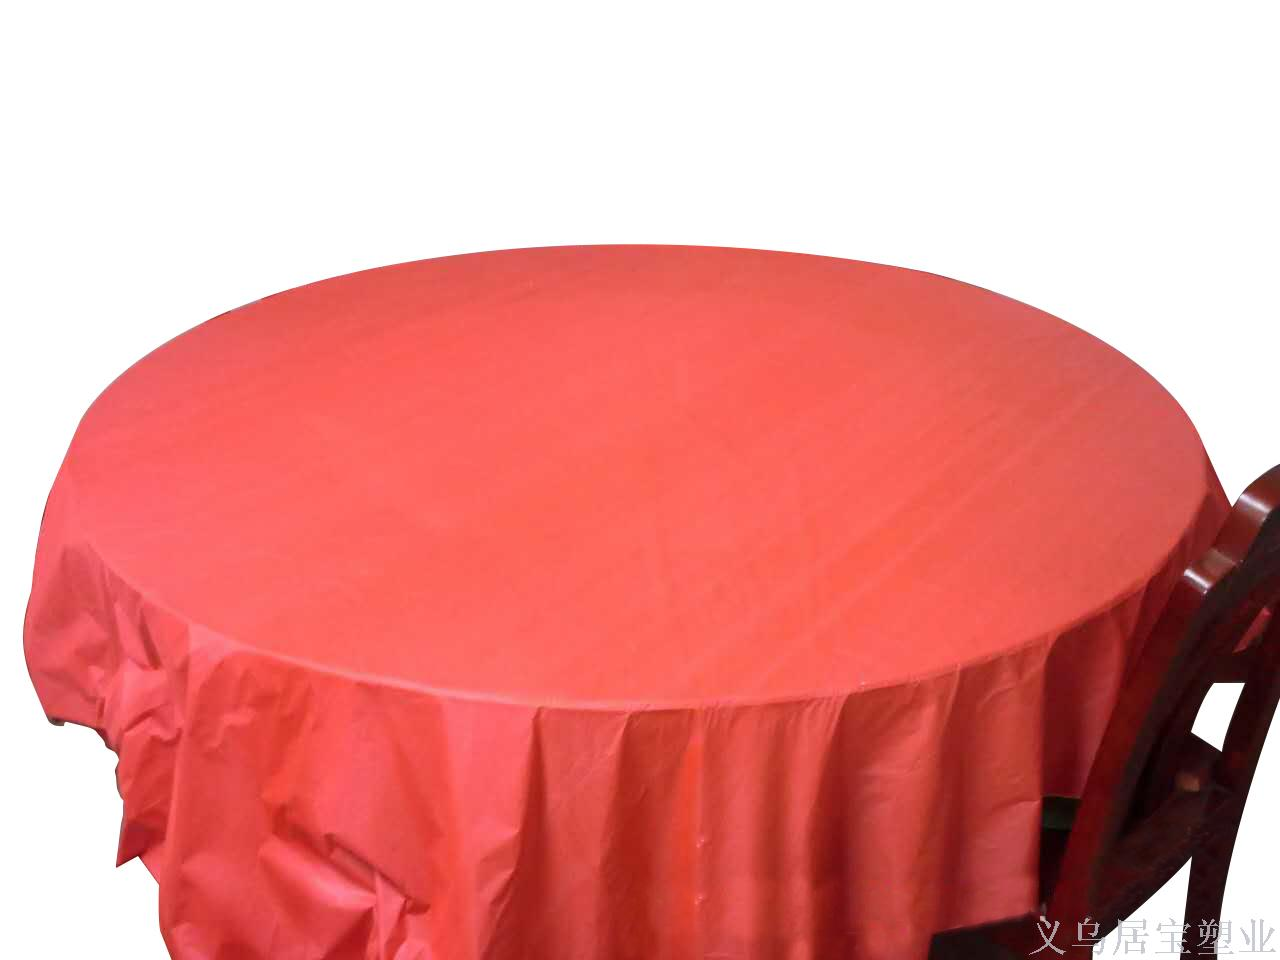 High Temperature Resistant Waterproof Oil Proof Anti Fouling Protect The Table Suitable For Hotel Restaurant Or Square